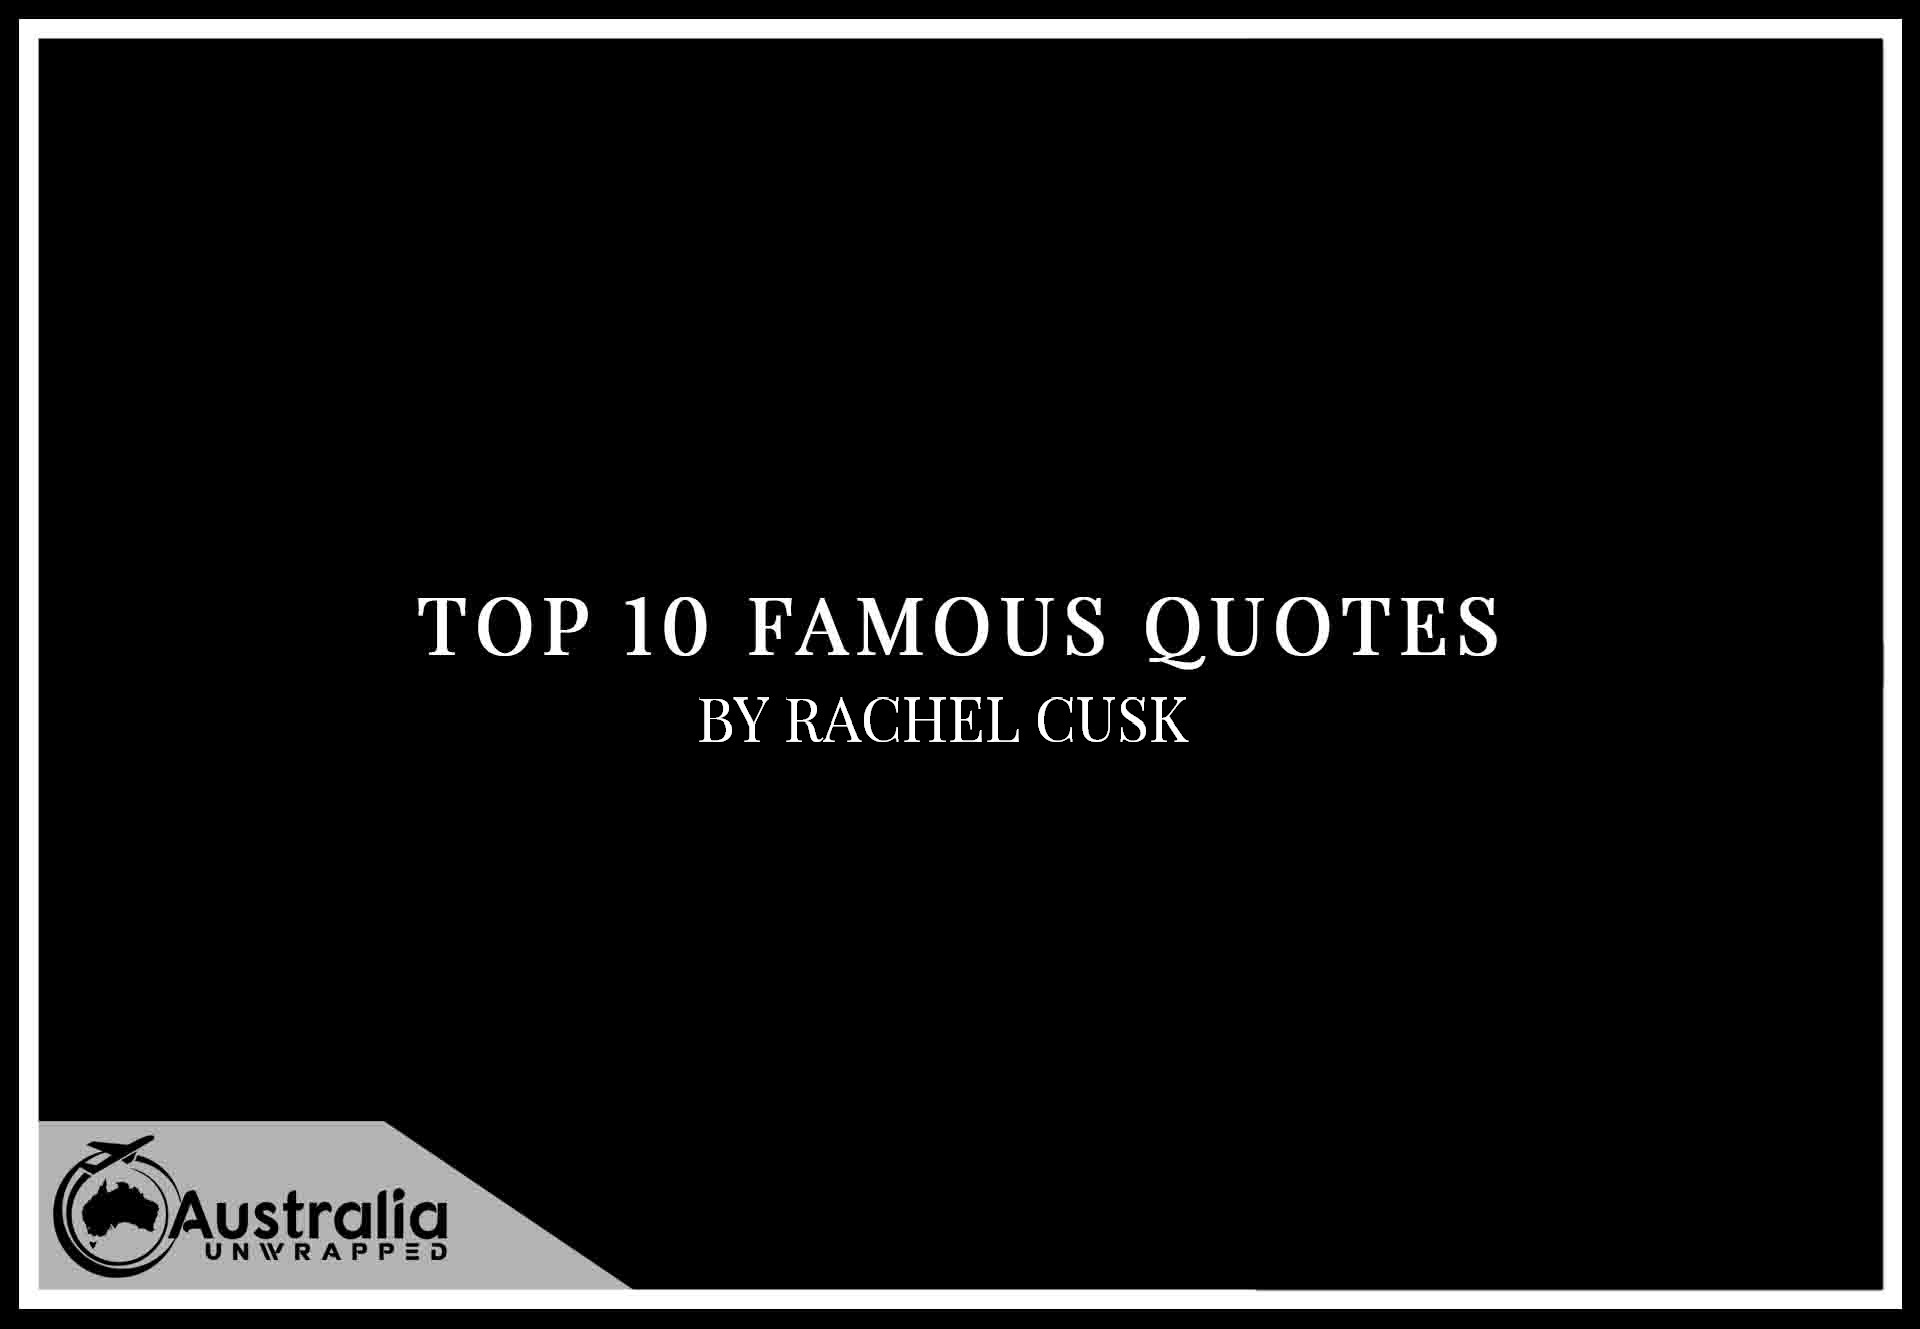 Top 10 Famous Quotes by Author Rachel Cusk